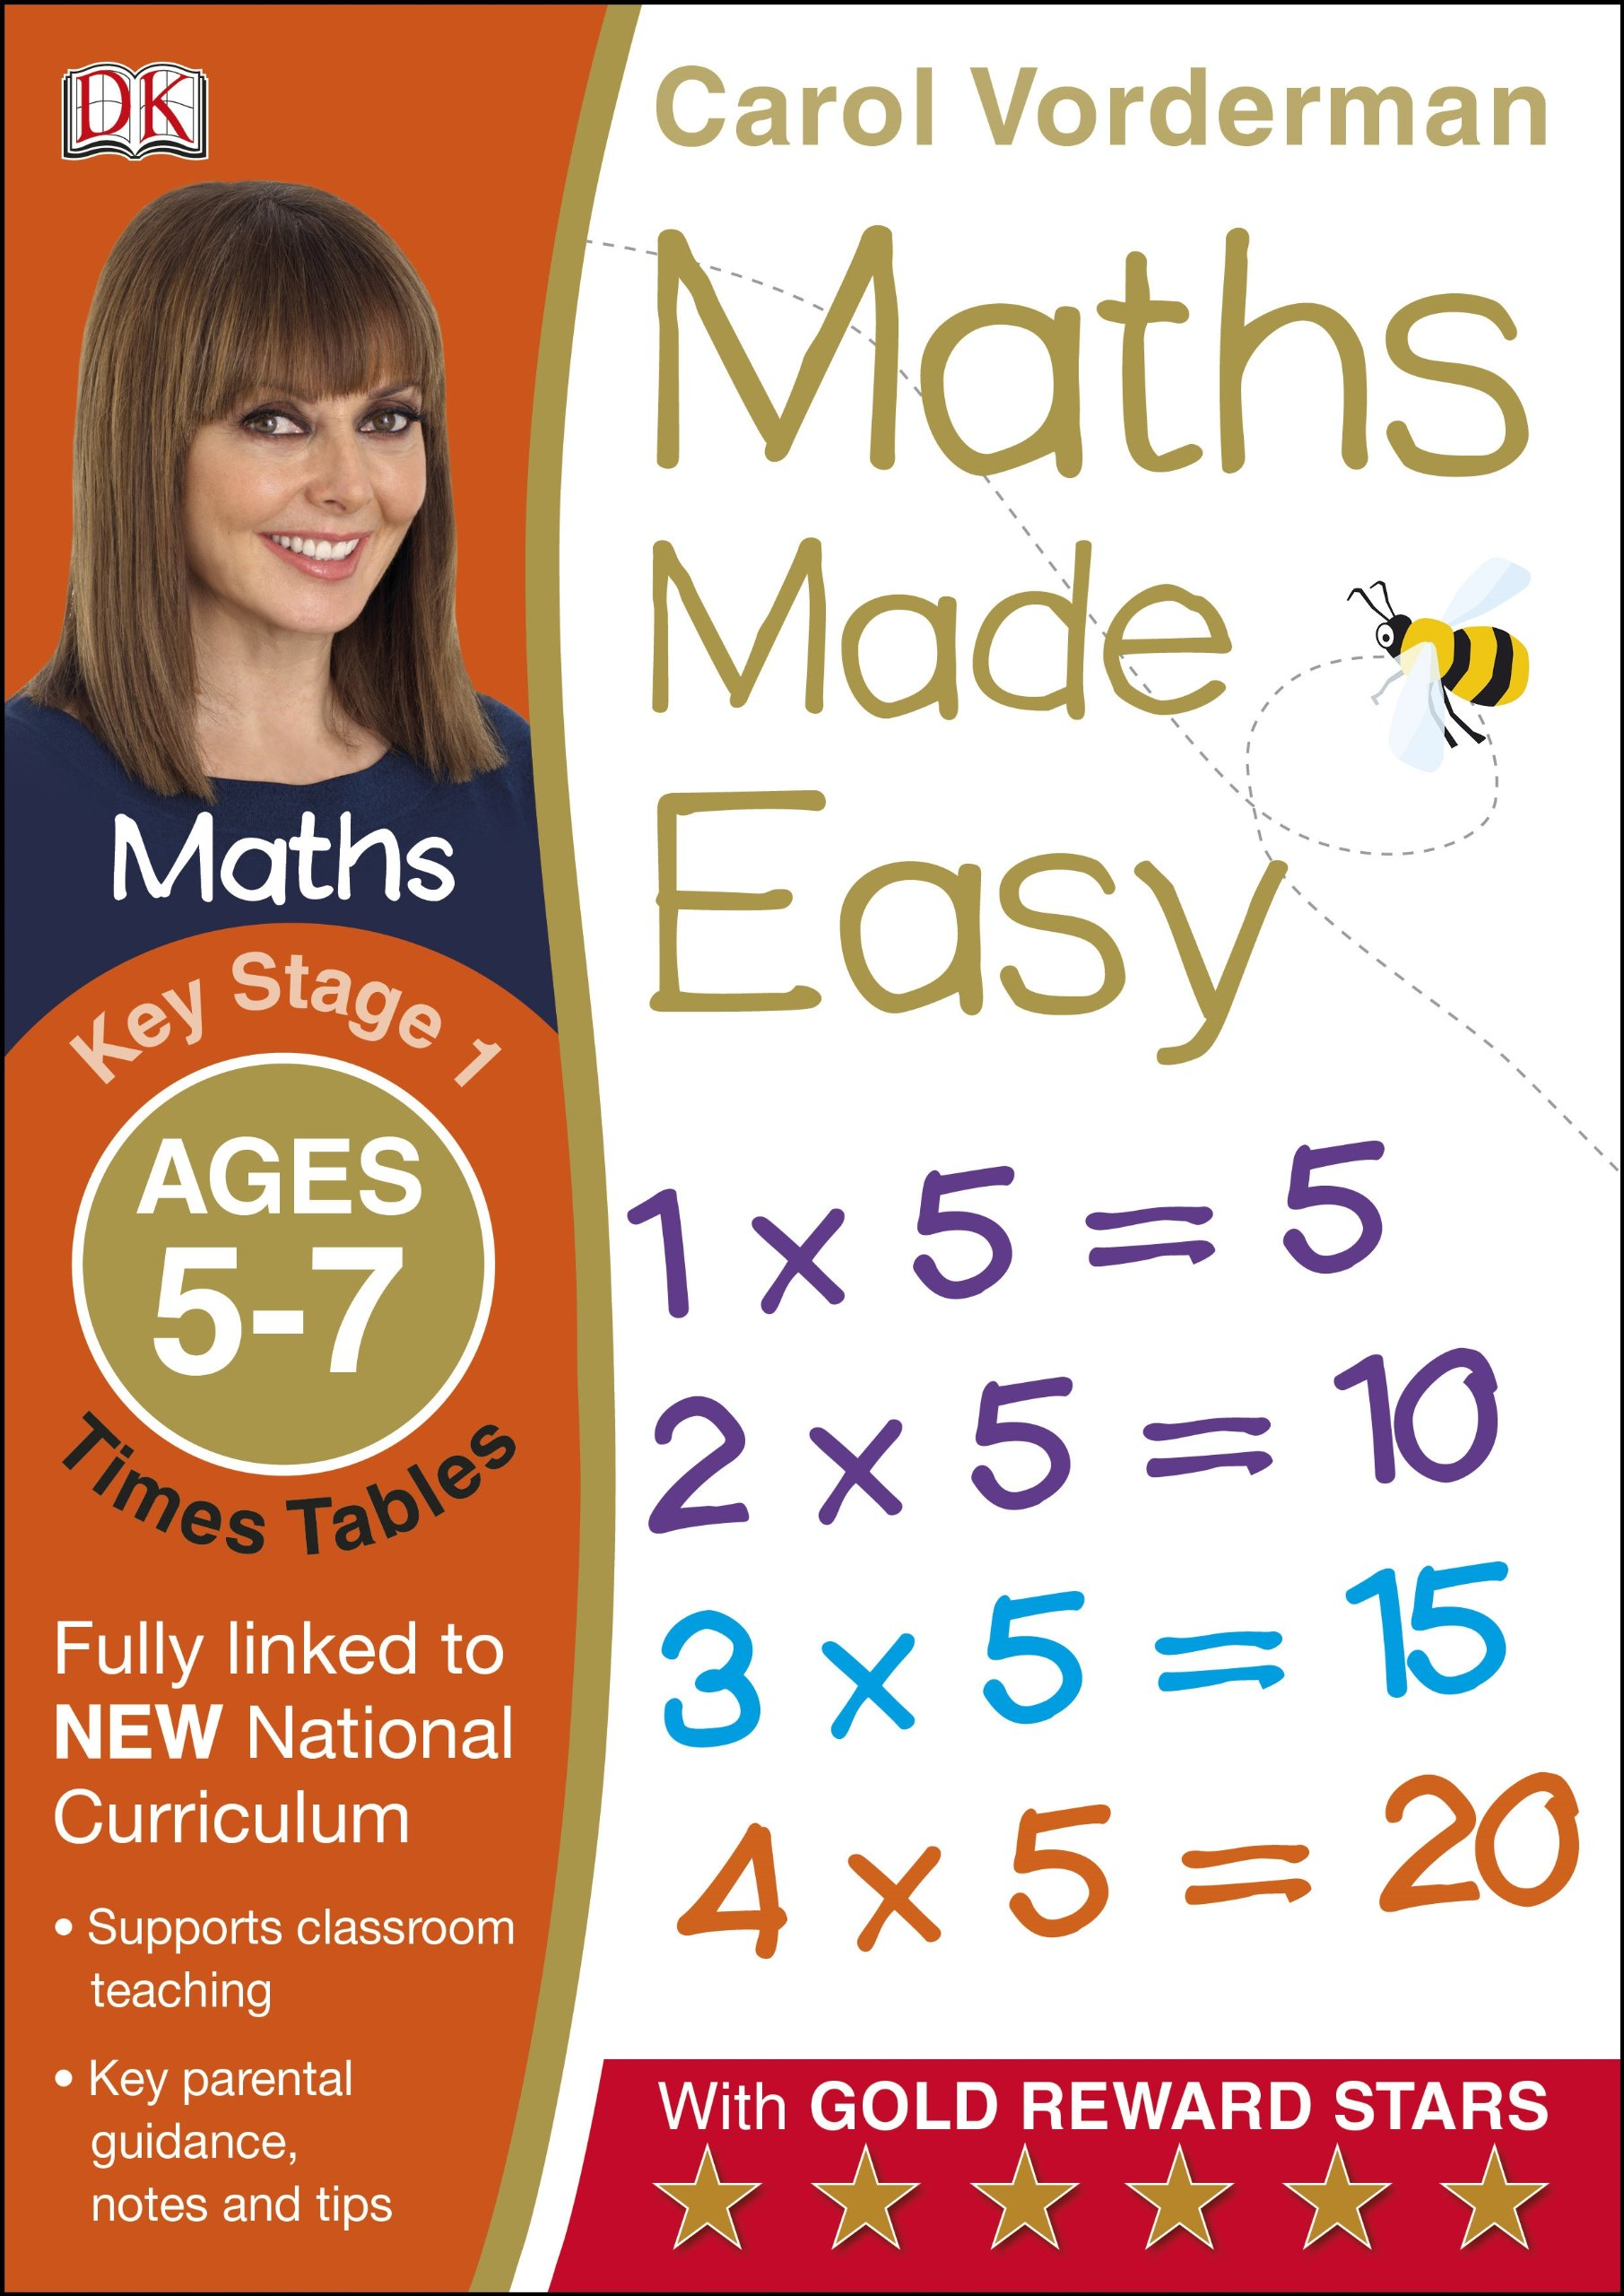 maths-made-easy-times-tables-ages-5-7-key-stage-1-carol-vorderman-s-maths-made-easy